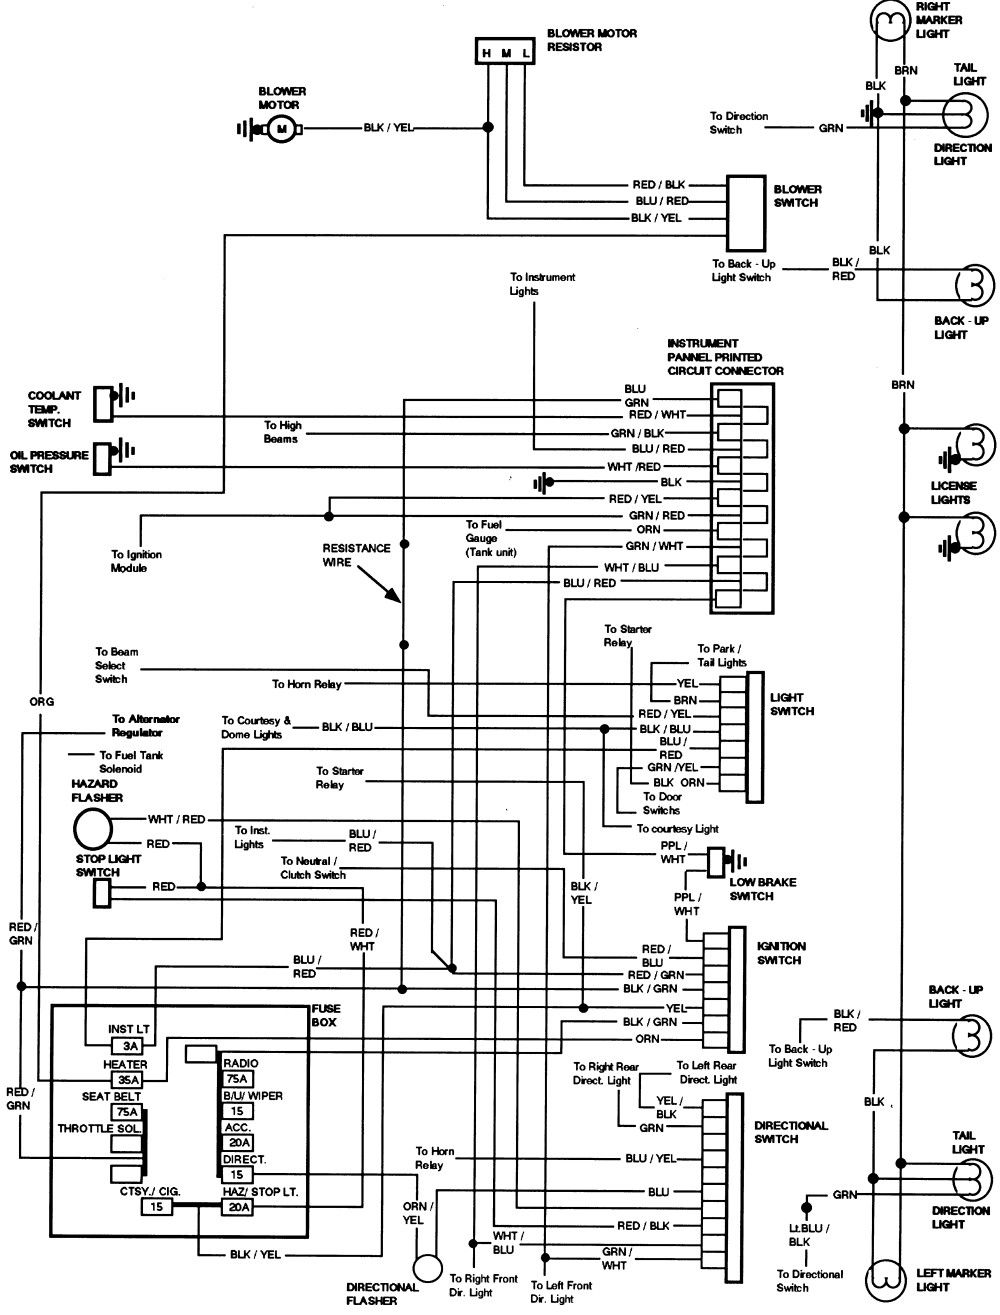 Ford Ignition Switch Wiring Diagram | Ford f250, Ford f350 diesel, Fordwww.pinterest.ph